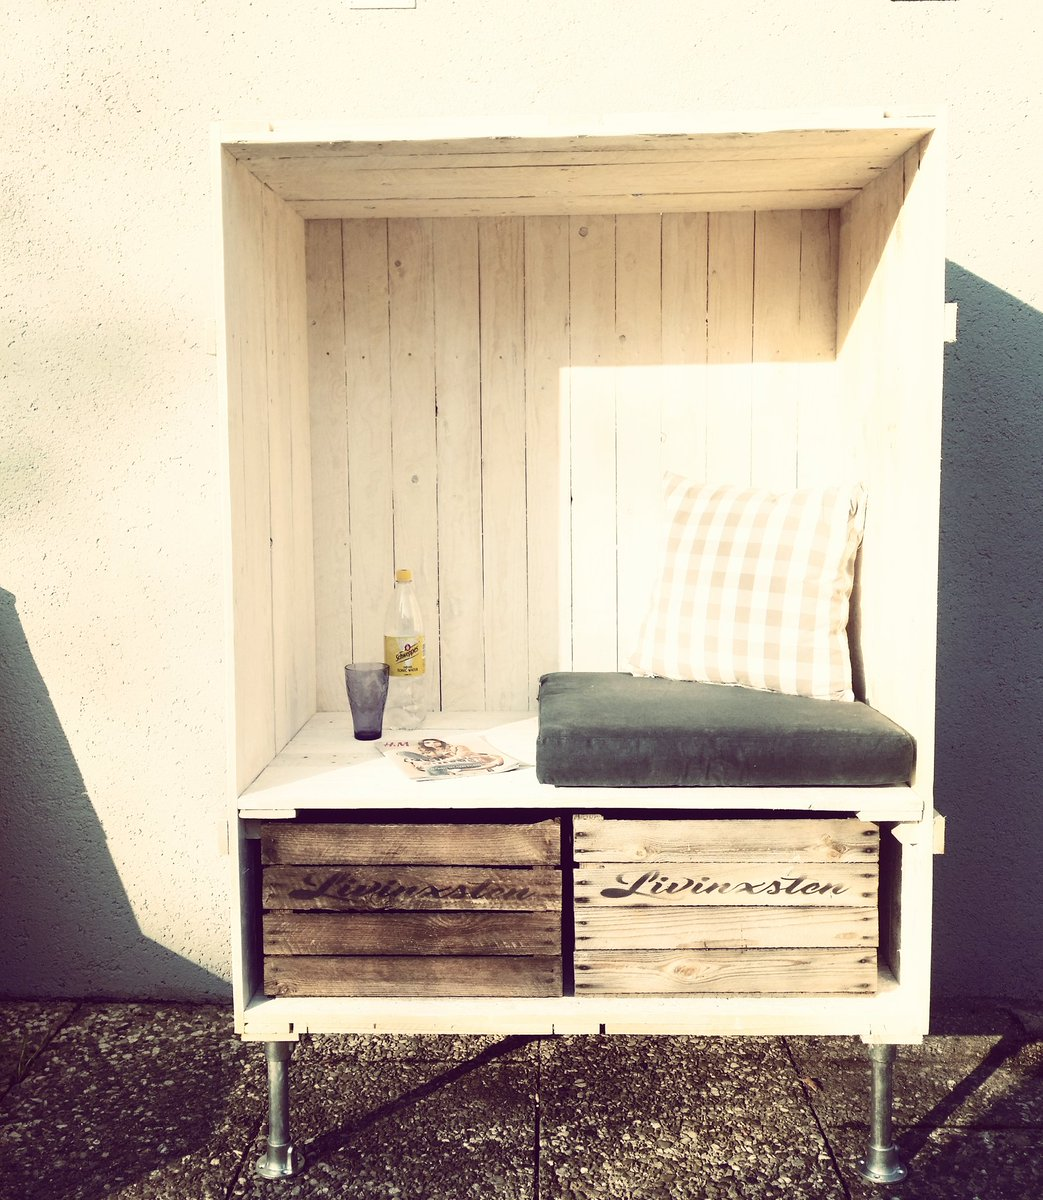 livinxsten on twitter shabby industrial strandkorb garten terasse loft strand bank. Black Bedroom Furniture Sets. Home Design Ideas